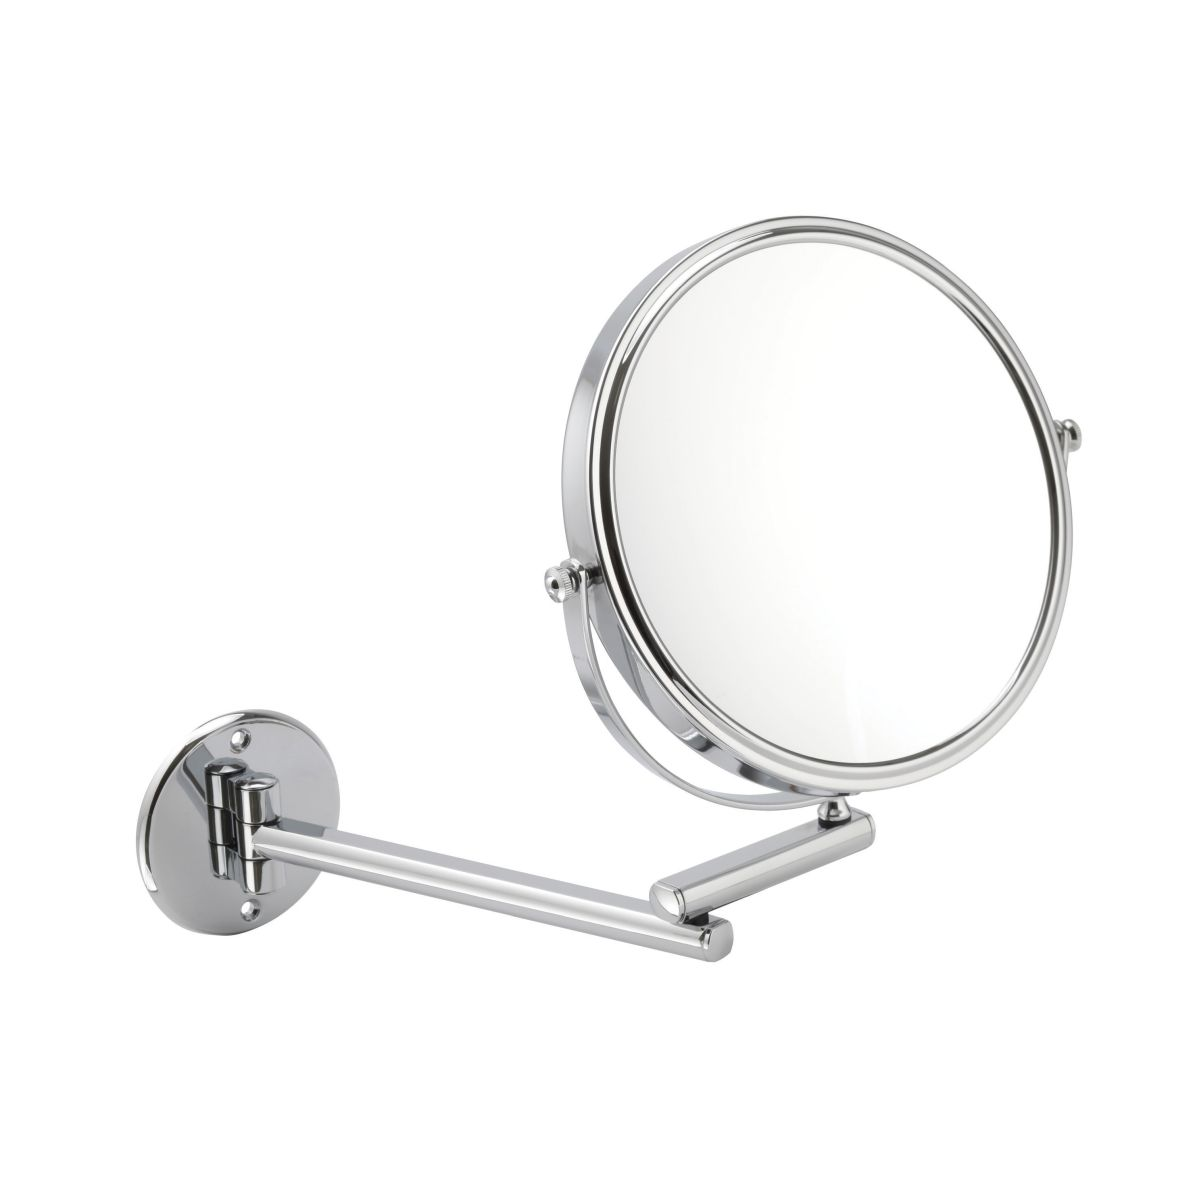 1081 20 chr 2 - Macy's Wall /Shaving Mirror with 10x Magnification - 1081/20CHR